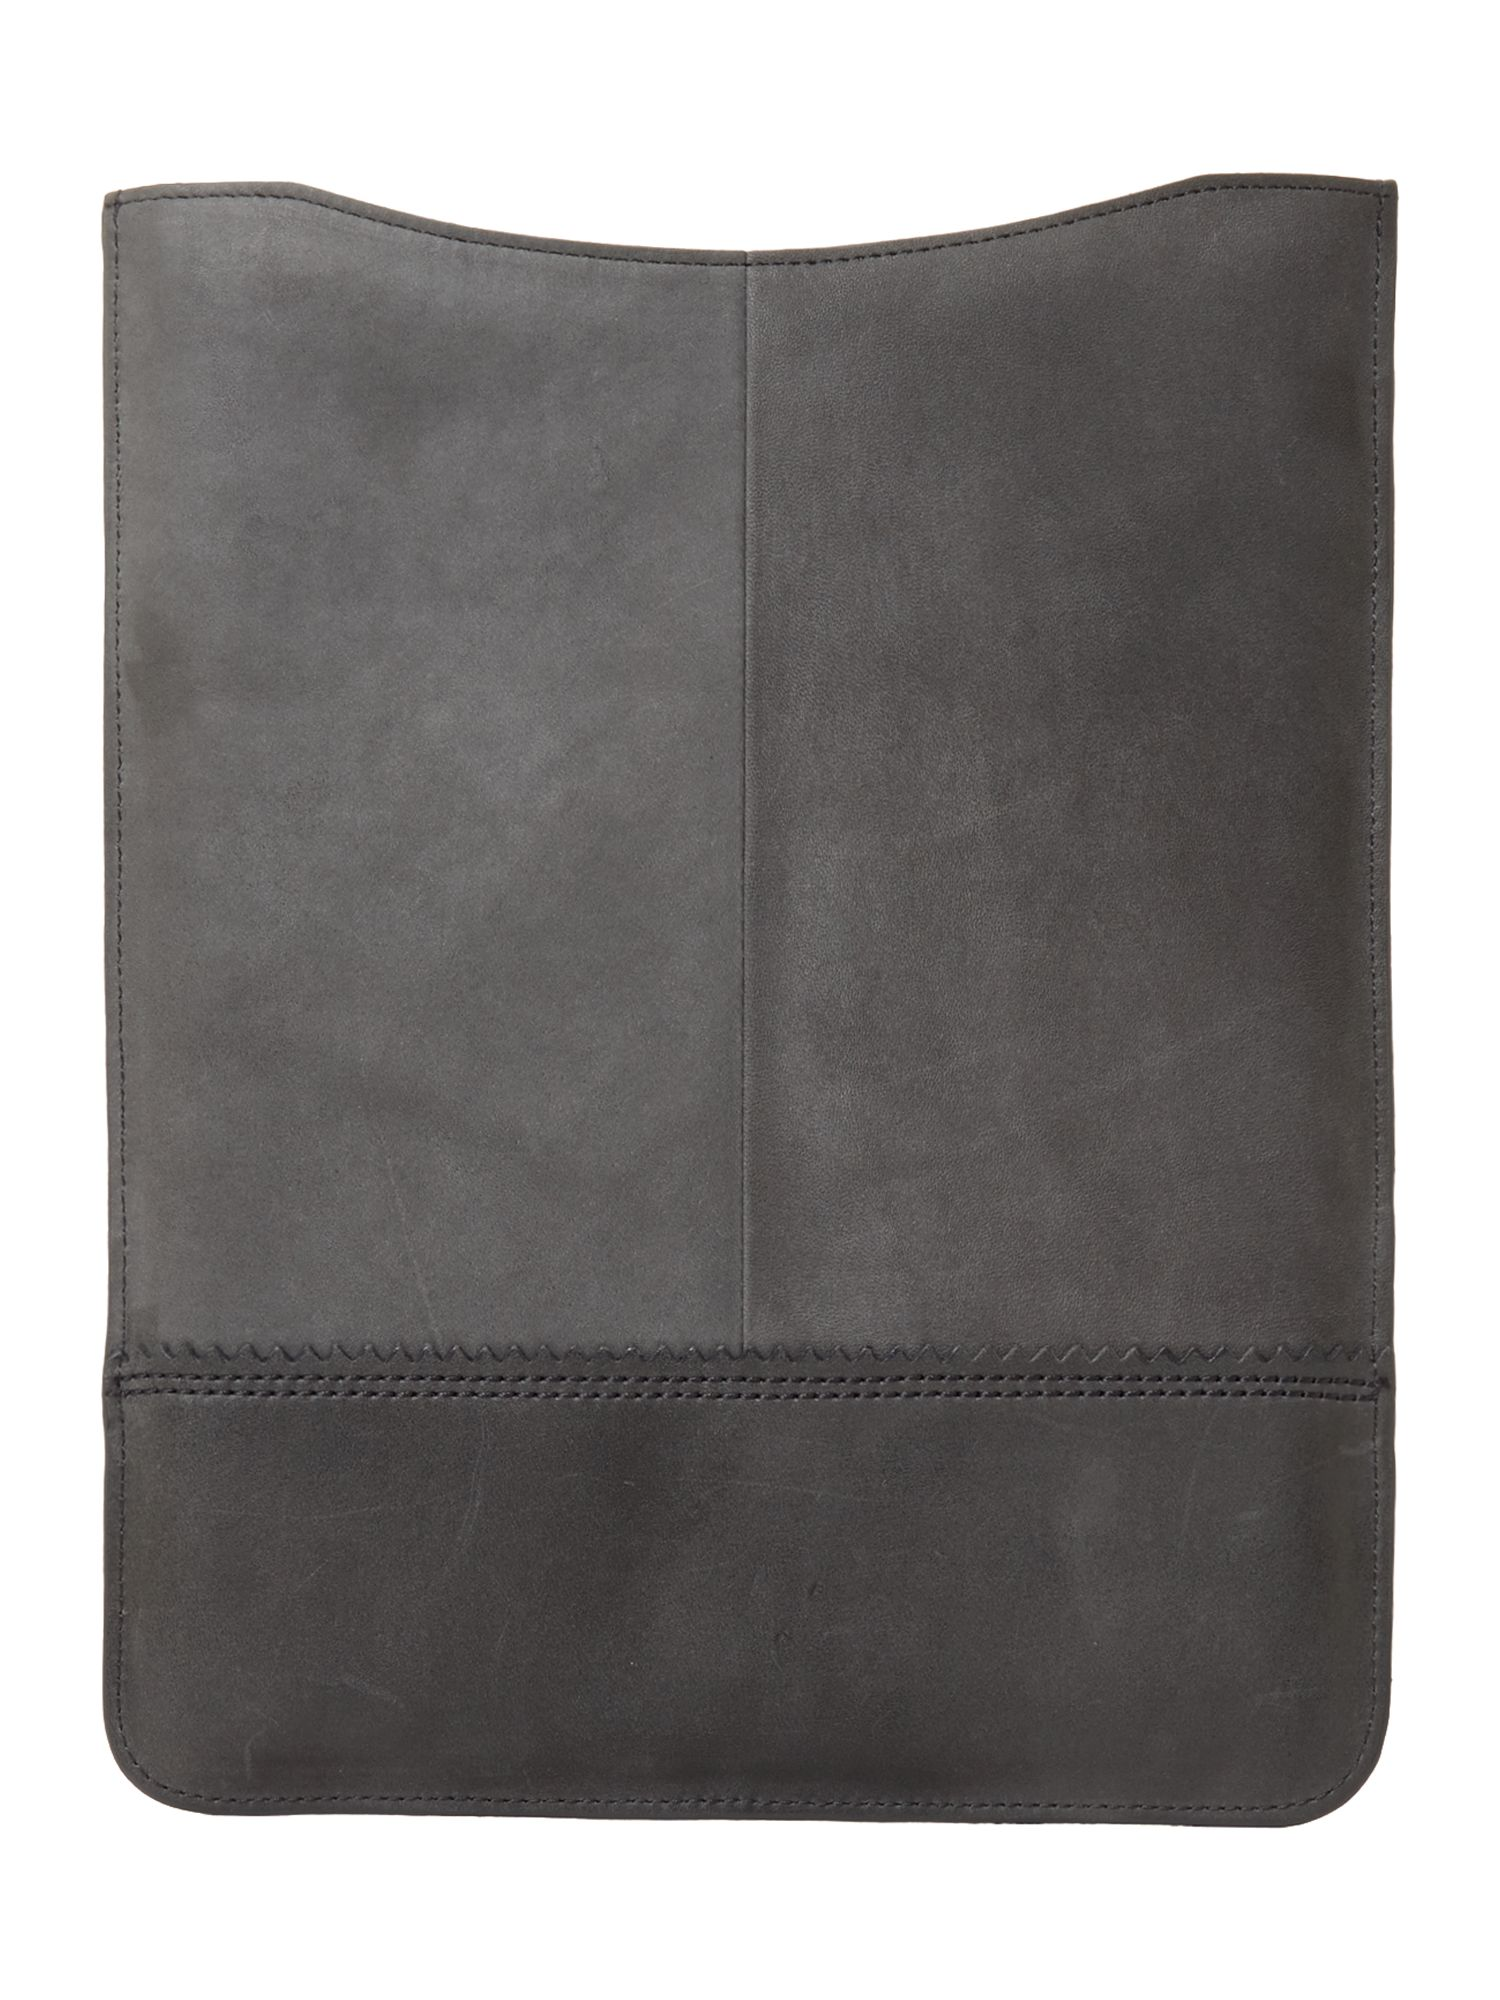 Polished leather small tablet case